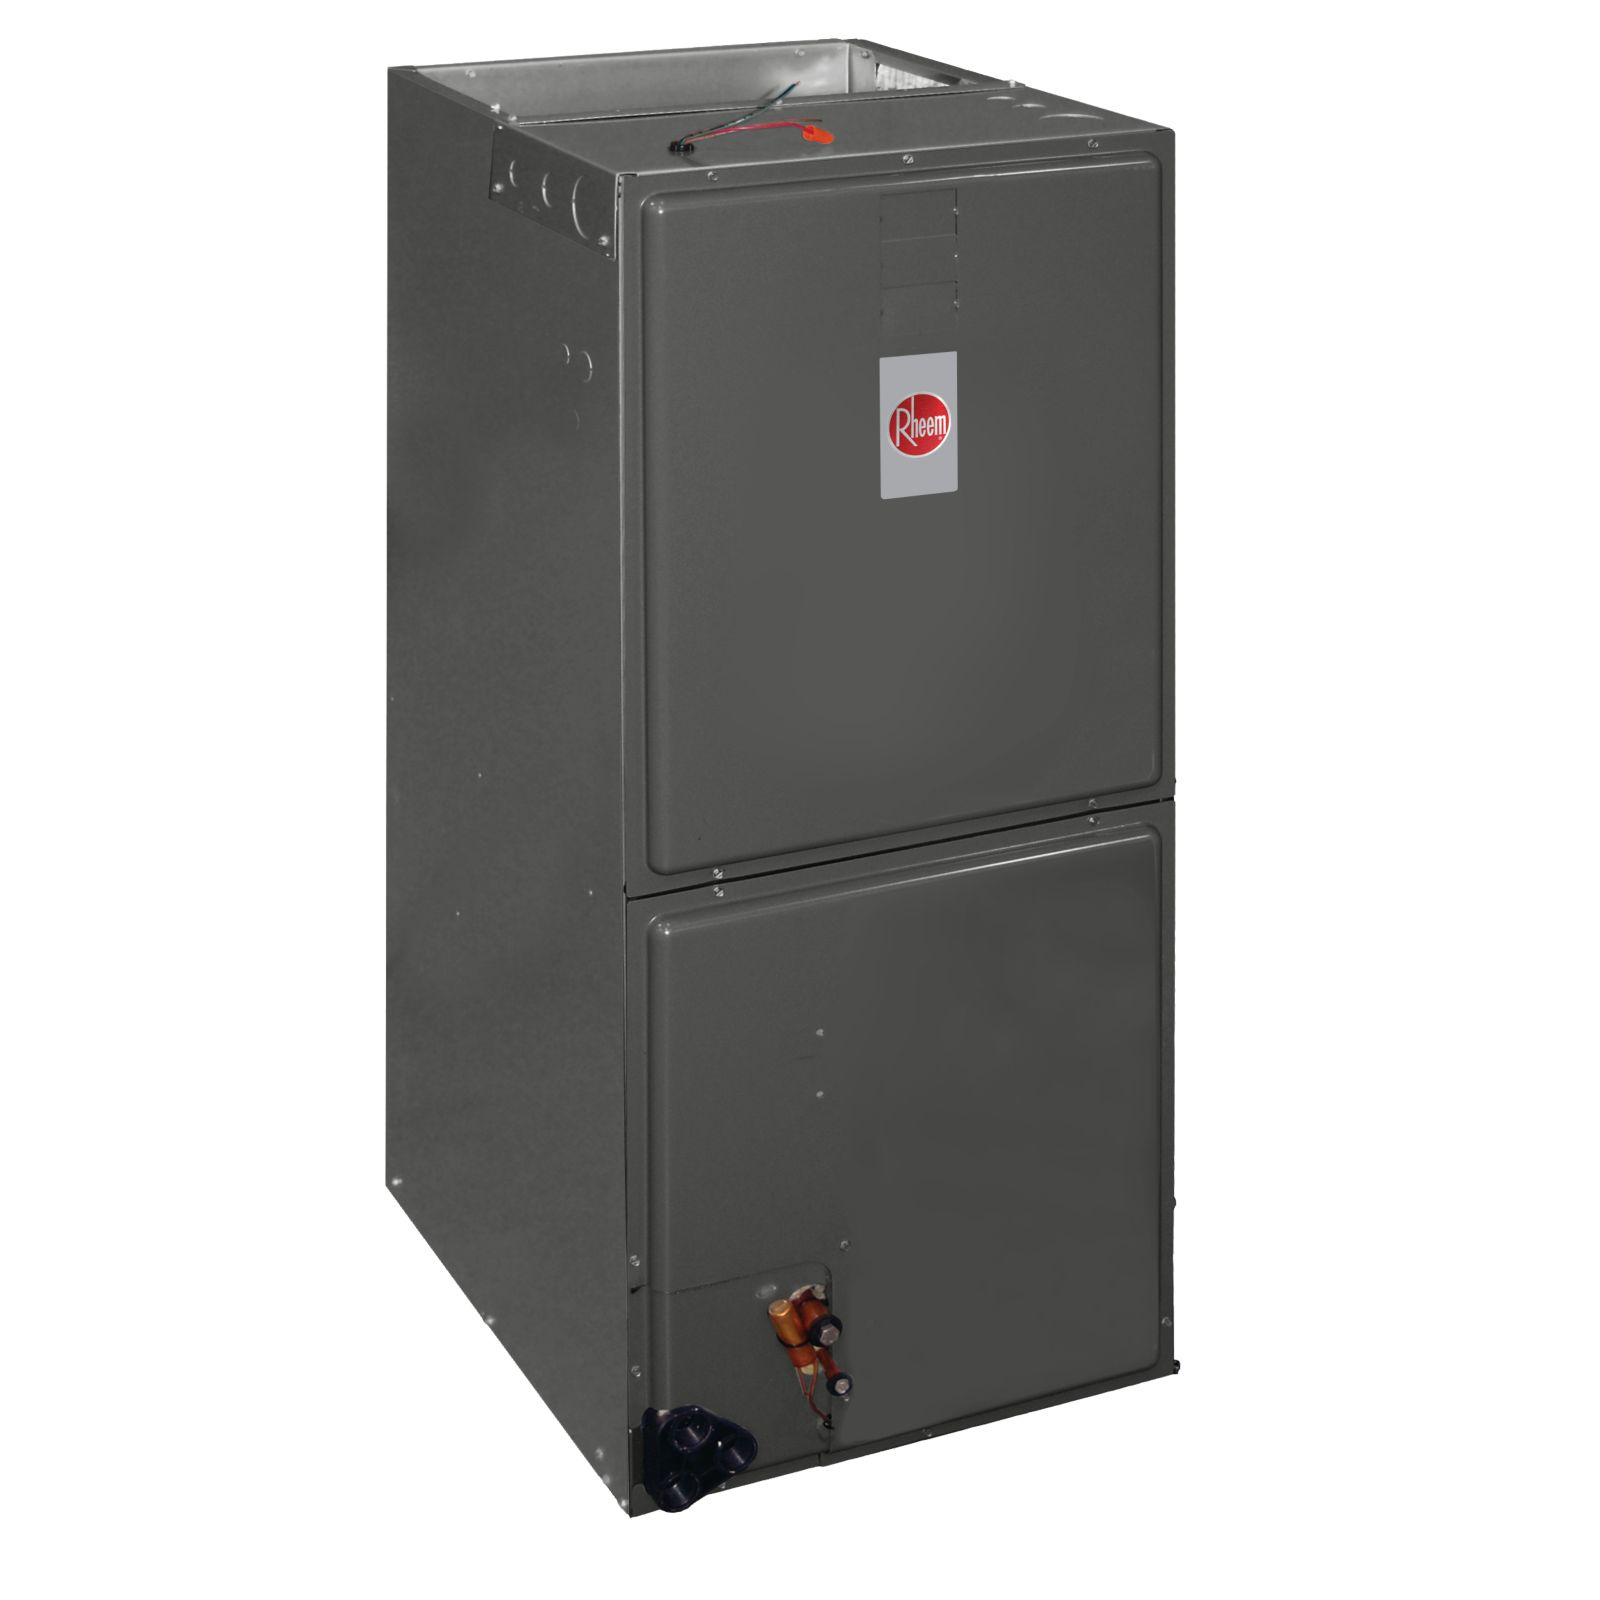 Rheem RHPL-HM3821JC - Premium 3 Ton Multiposition Air Handler with Comfort Control - Up to 16 SEER - R410A - ECM Motor